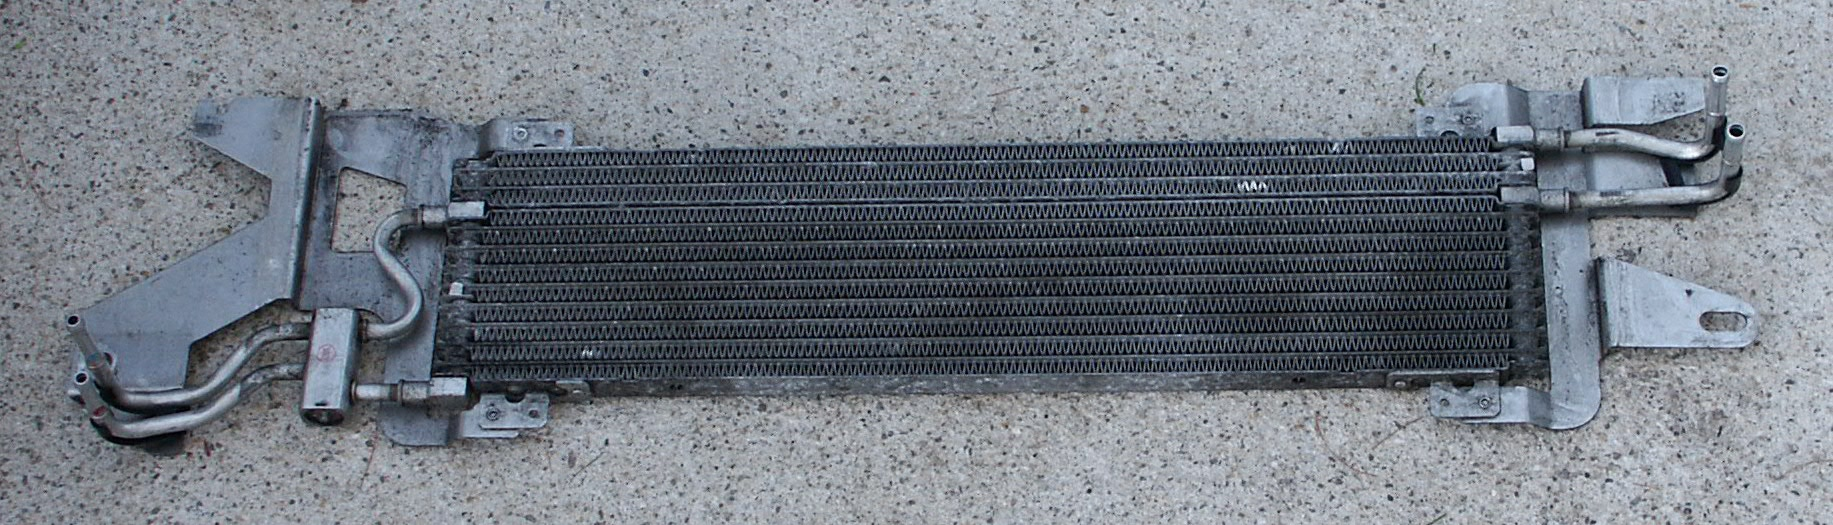 Below Are Some Pictures Of A Transmission Oil Cooler From 1999 Ford Crown Victoria